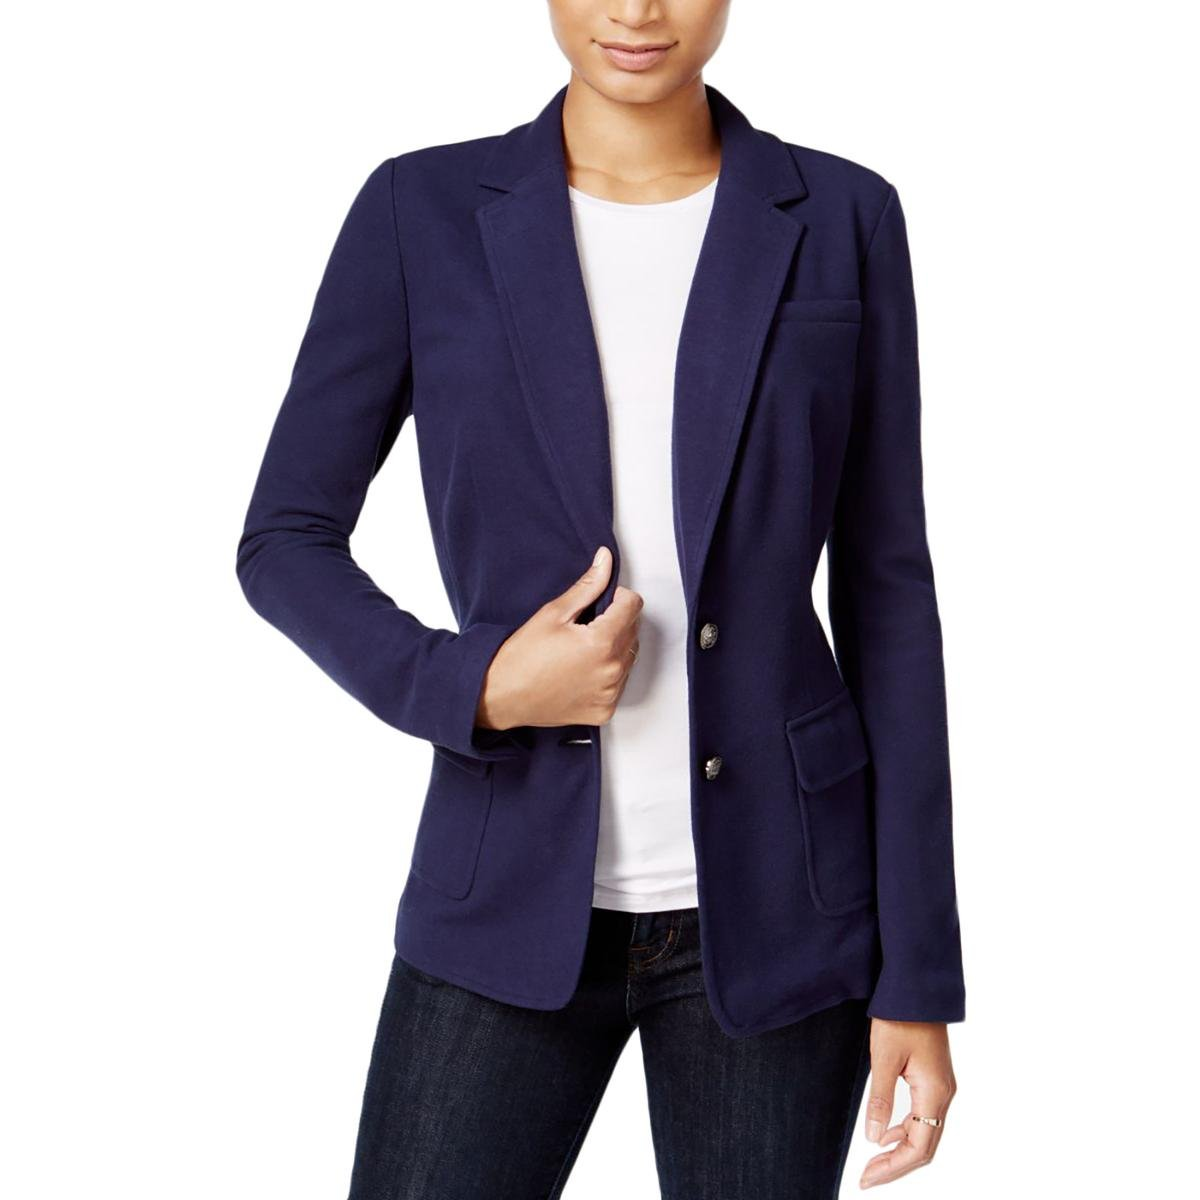 Maison Jules Womens Long Sleeves Collared Two-Button Blazer Navy M